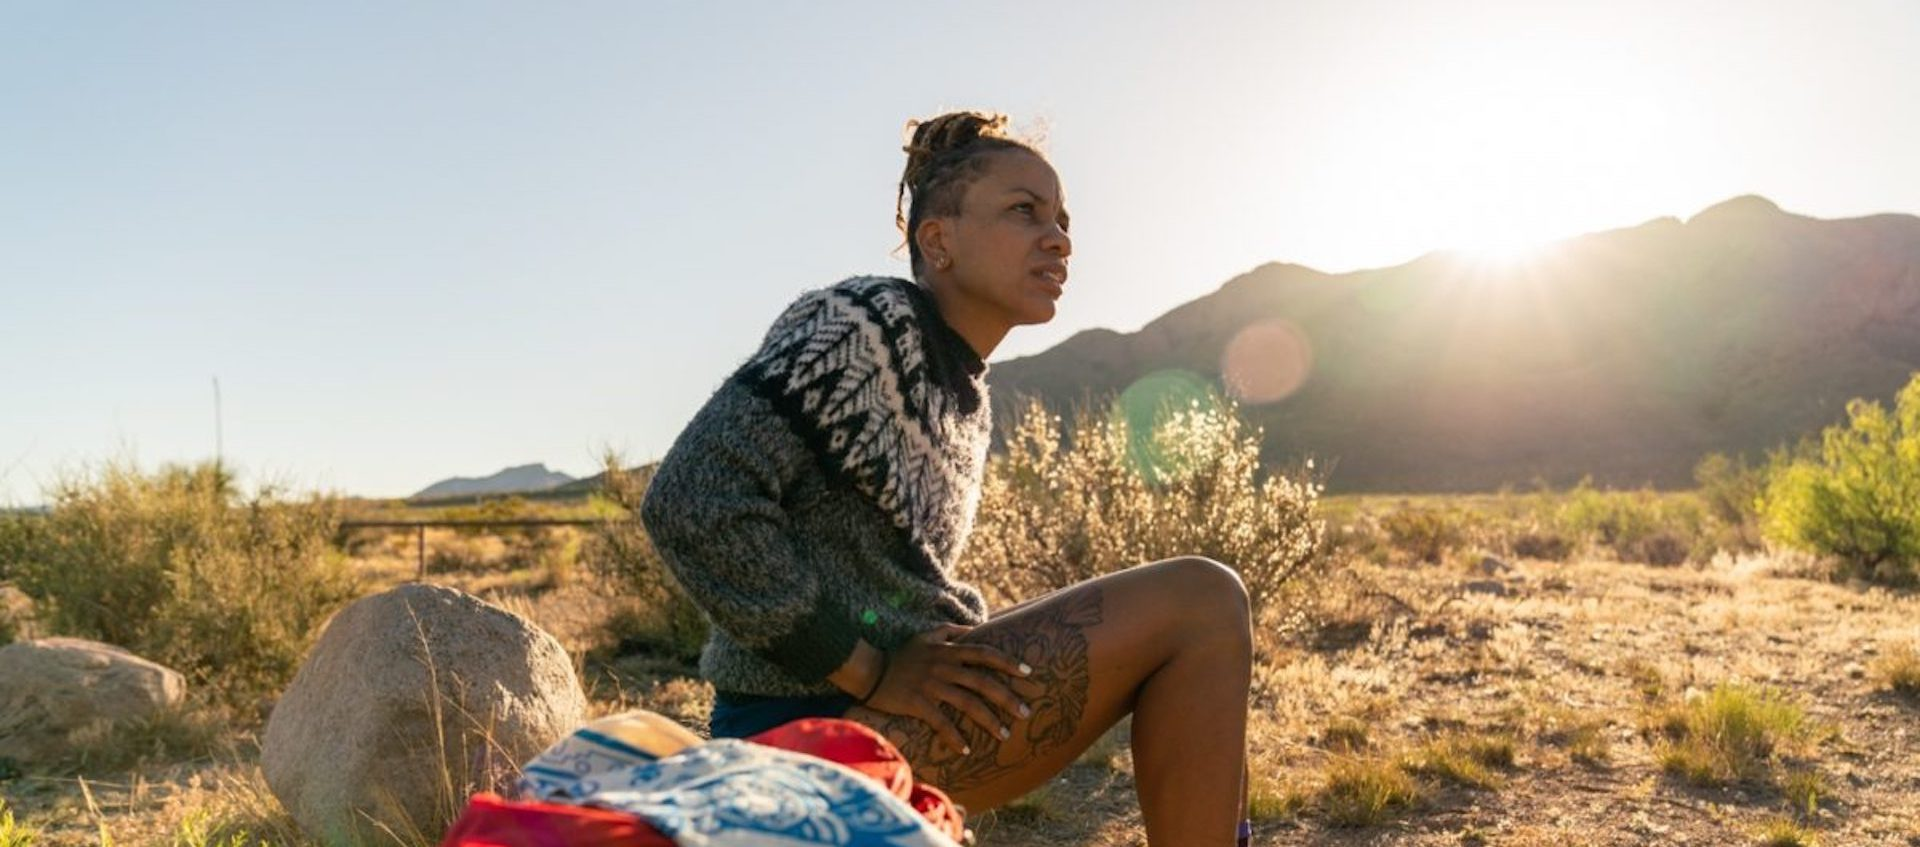 Runner and advocate Faith E. Briggs in Chelsea Jolly and Whitney Hassett's 2019 short film This Land